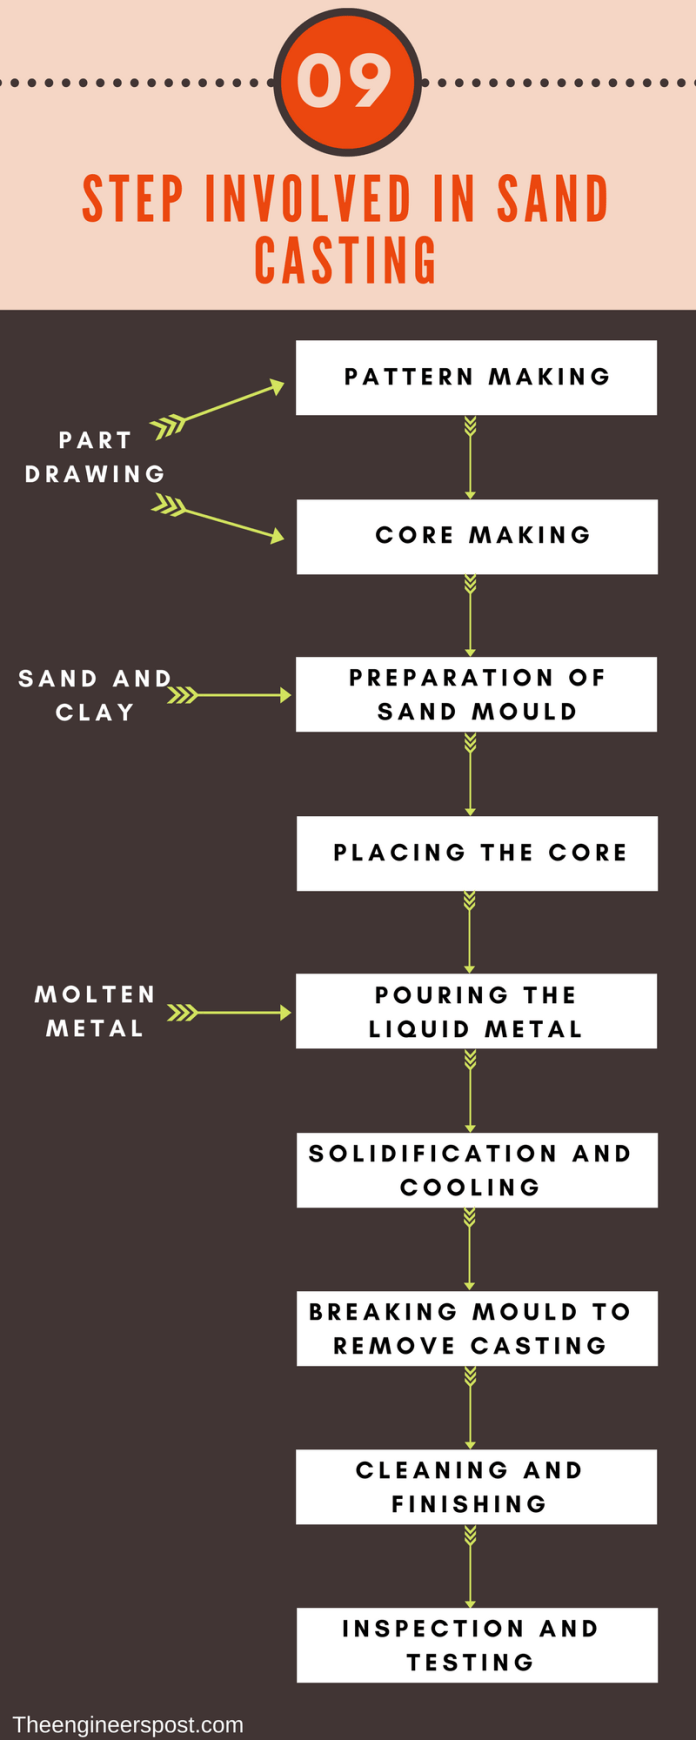 Step involved in sand casting process